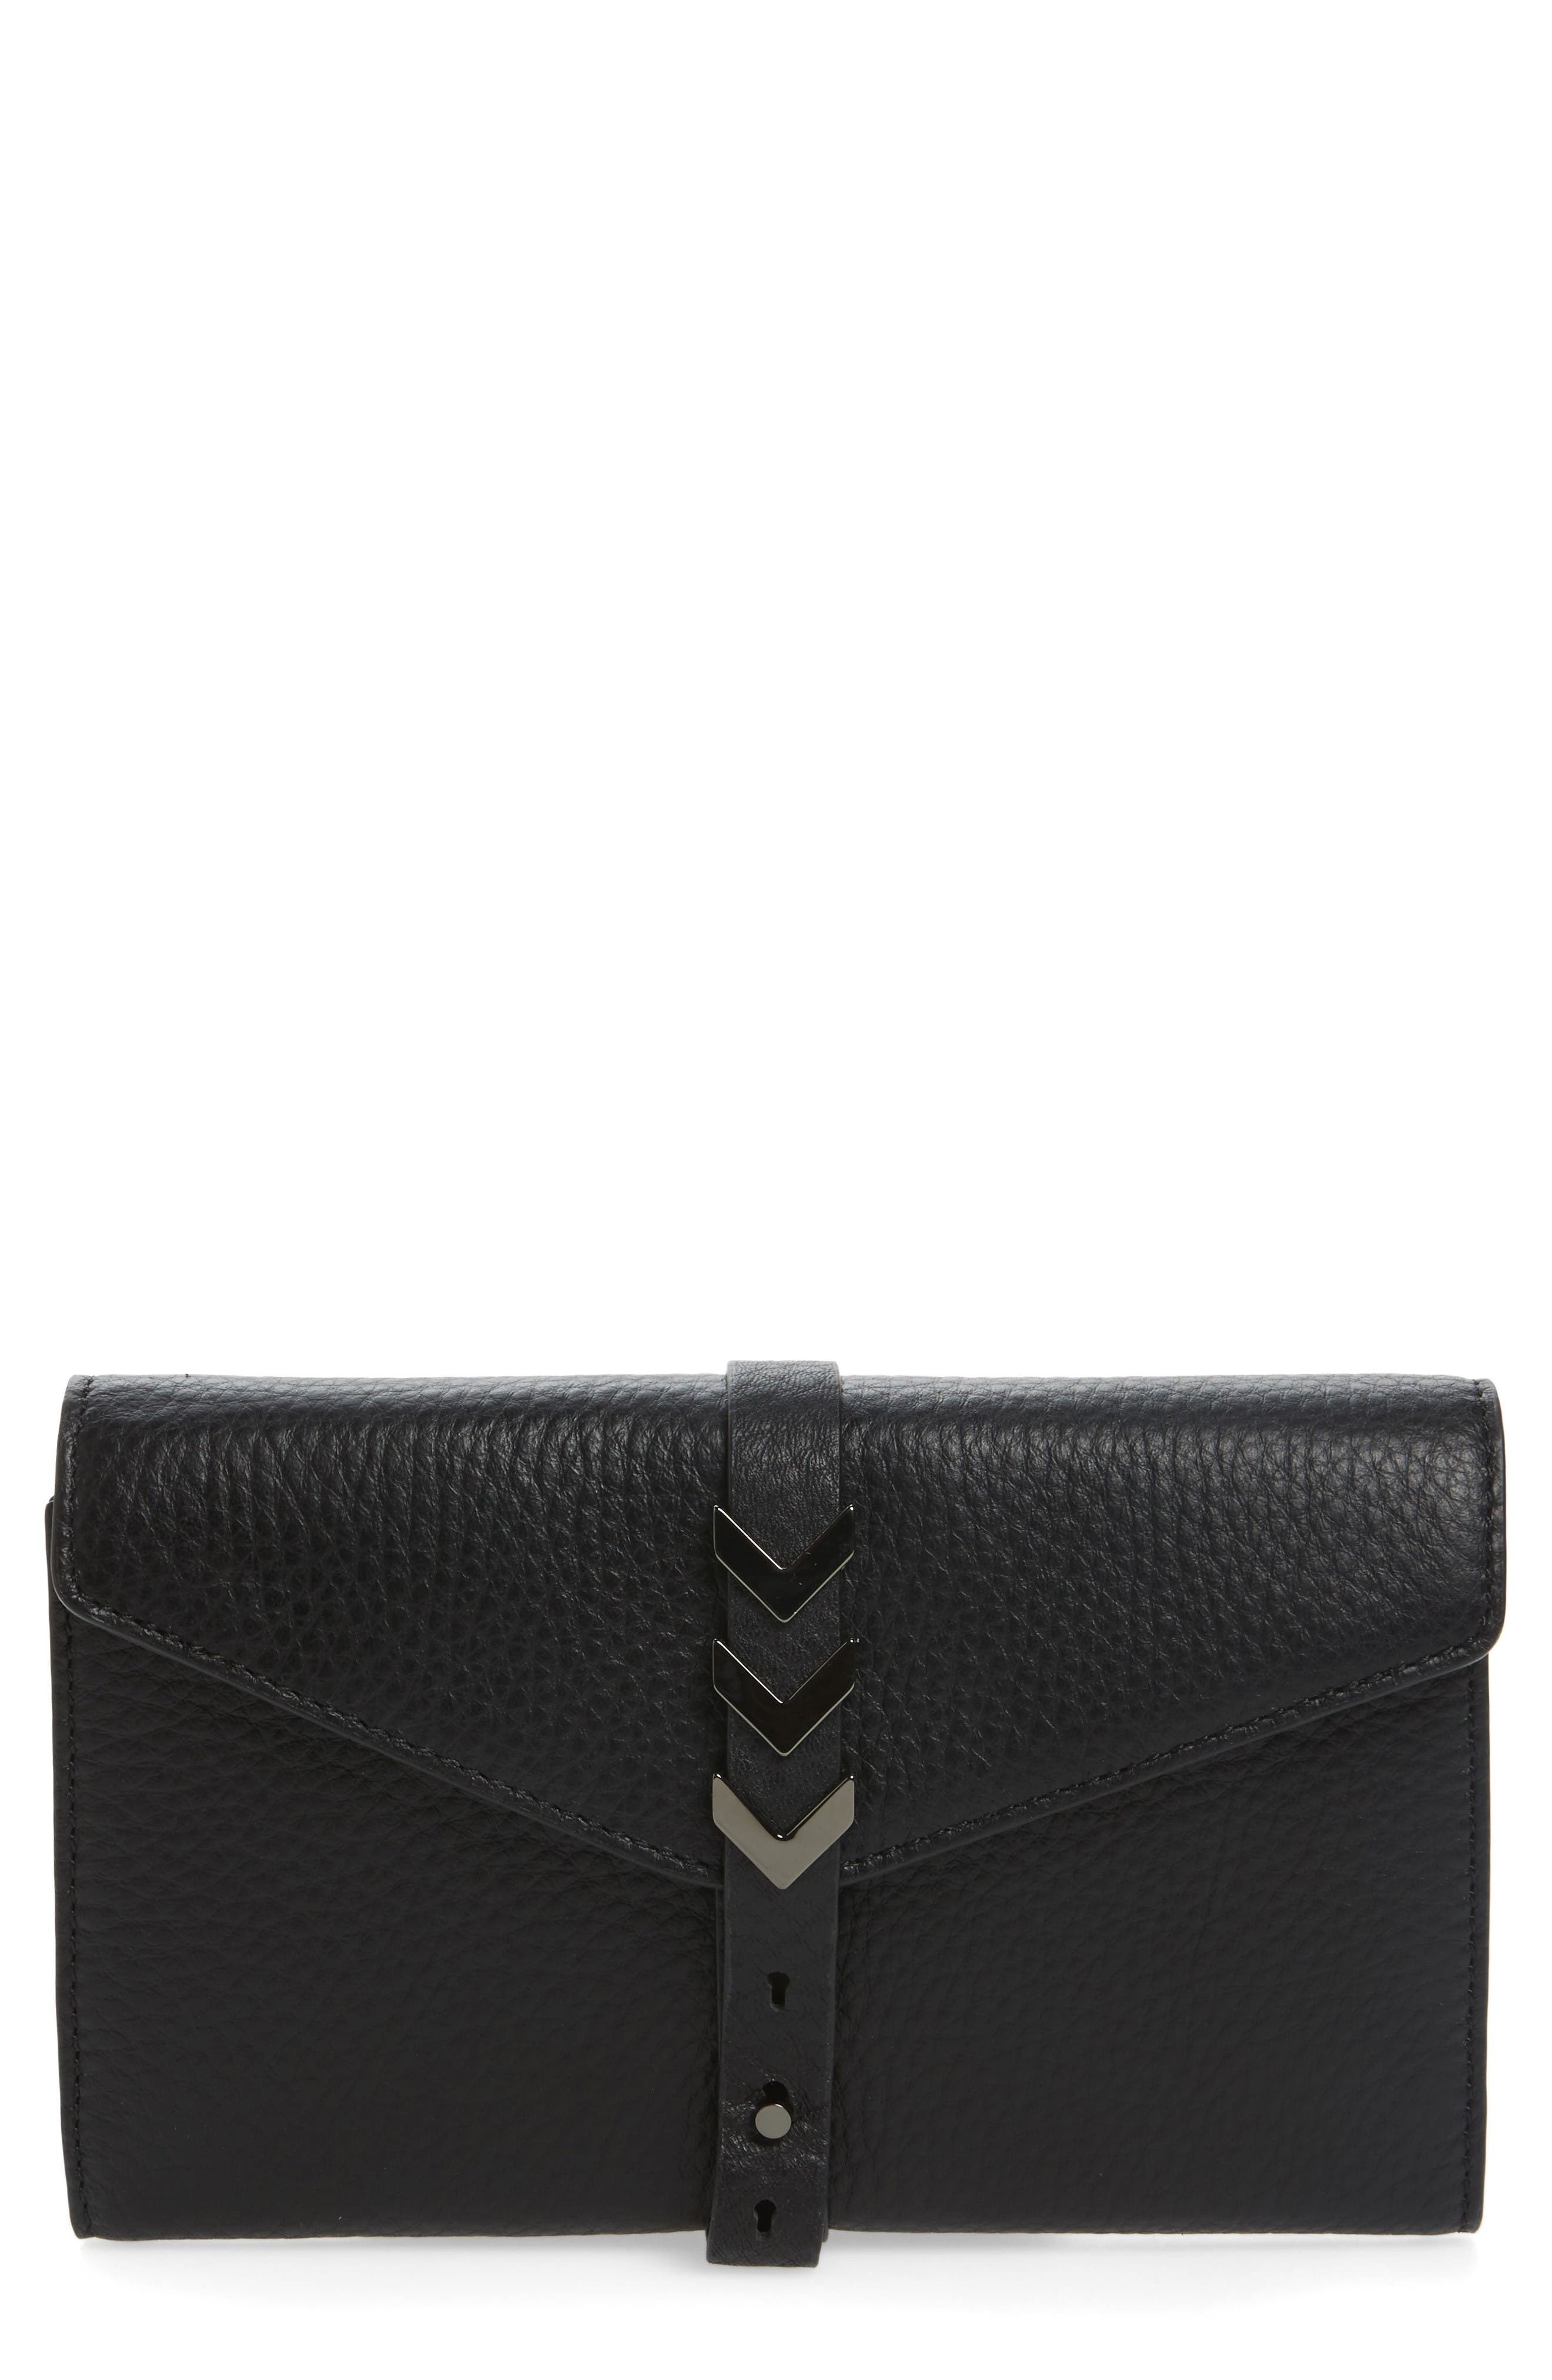 Alternate Image 1 Selected - Mackage Atlas Leather Envelope Wallet